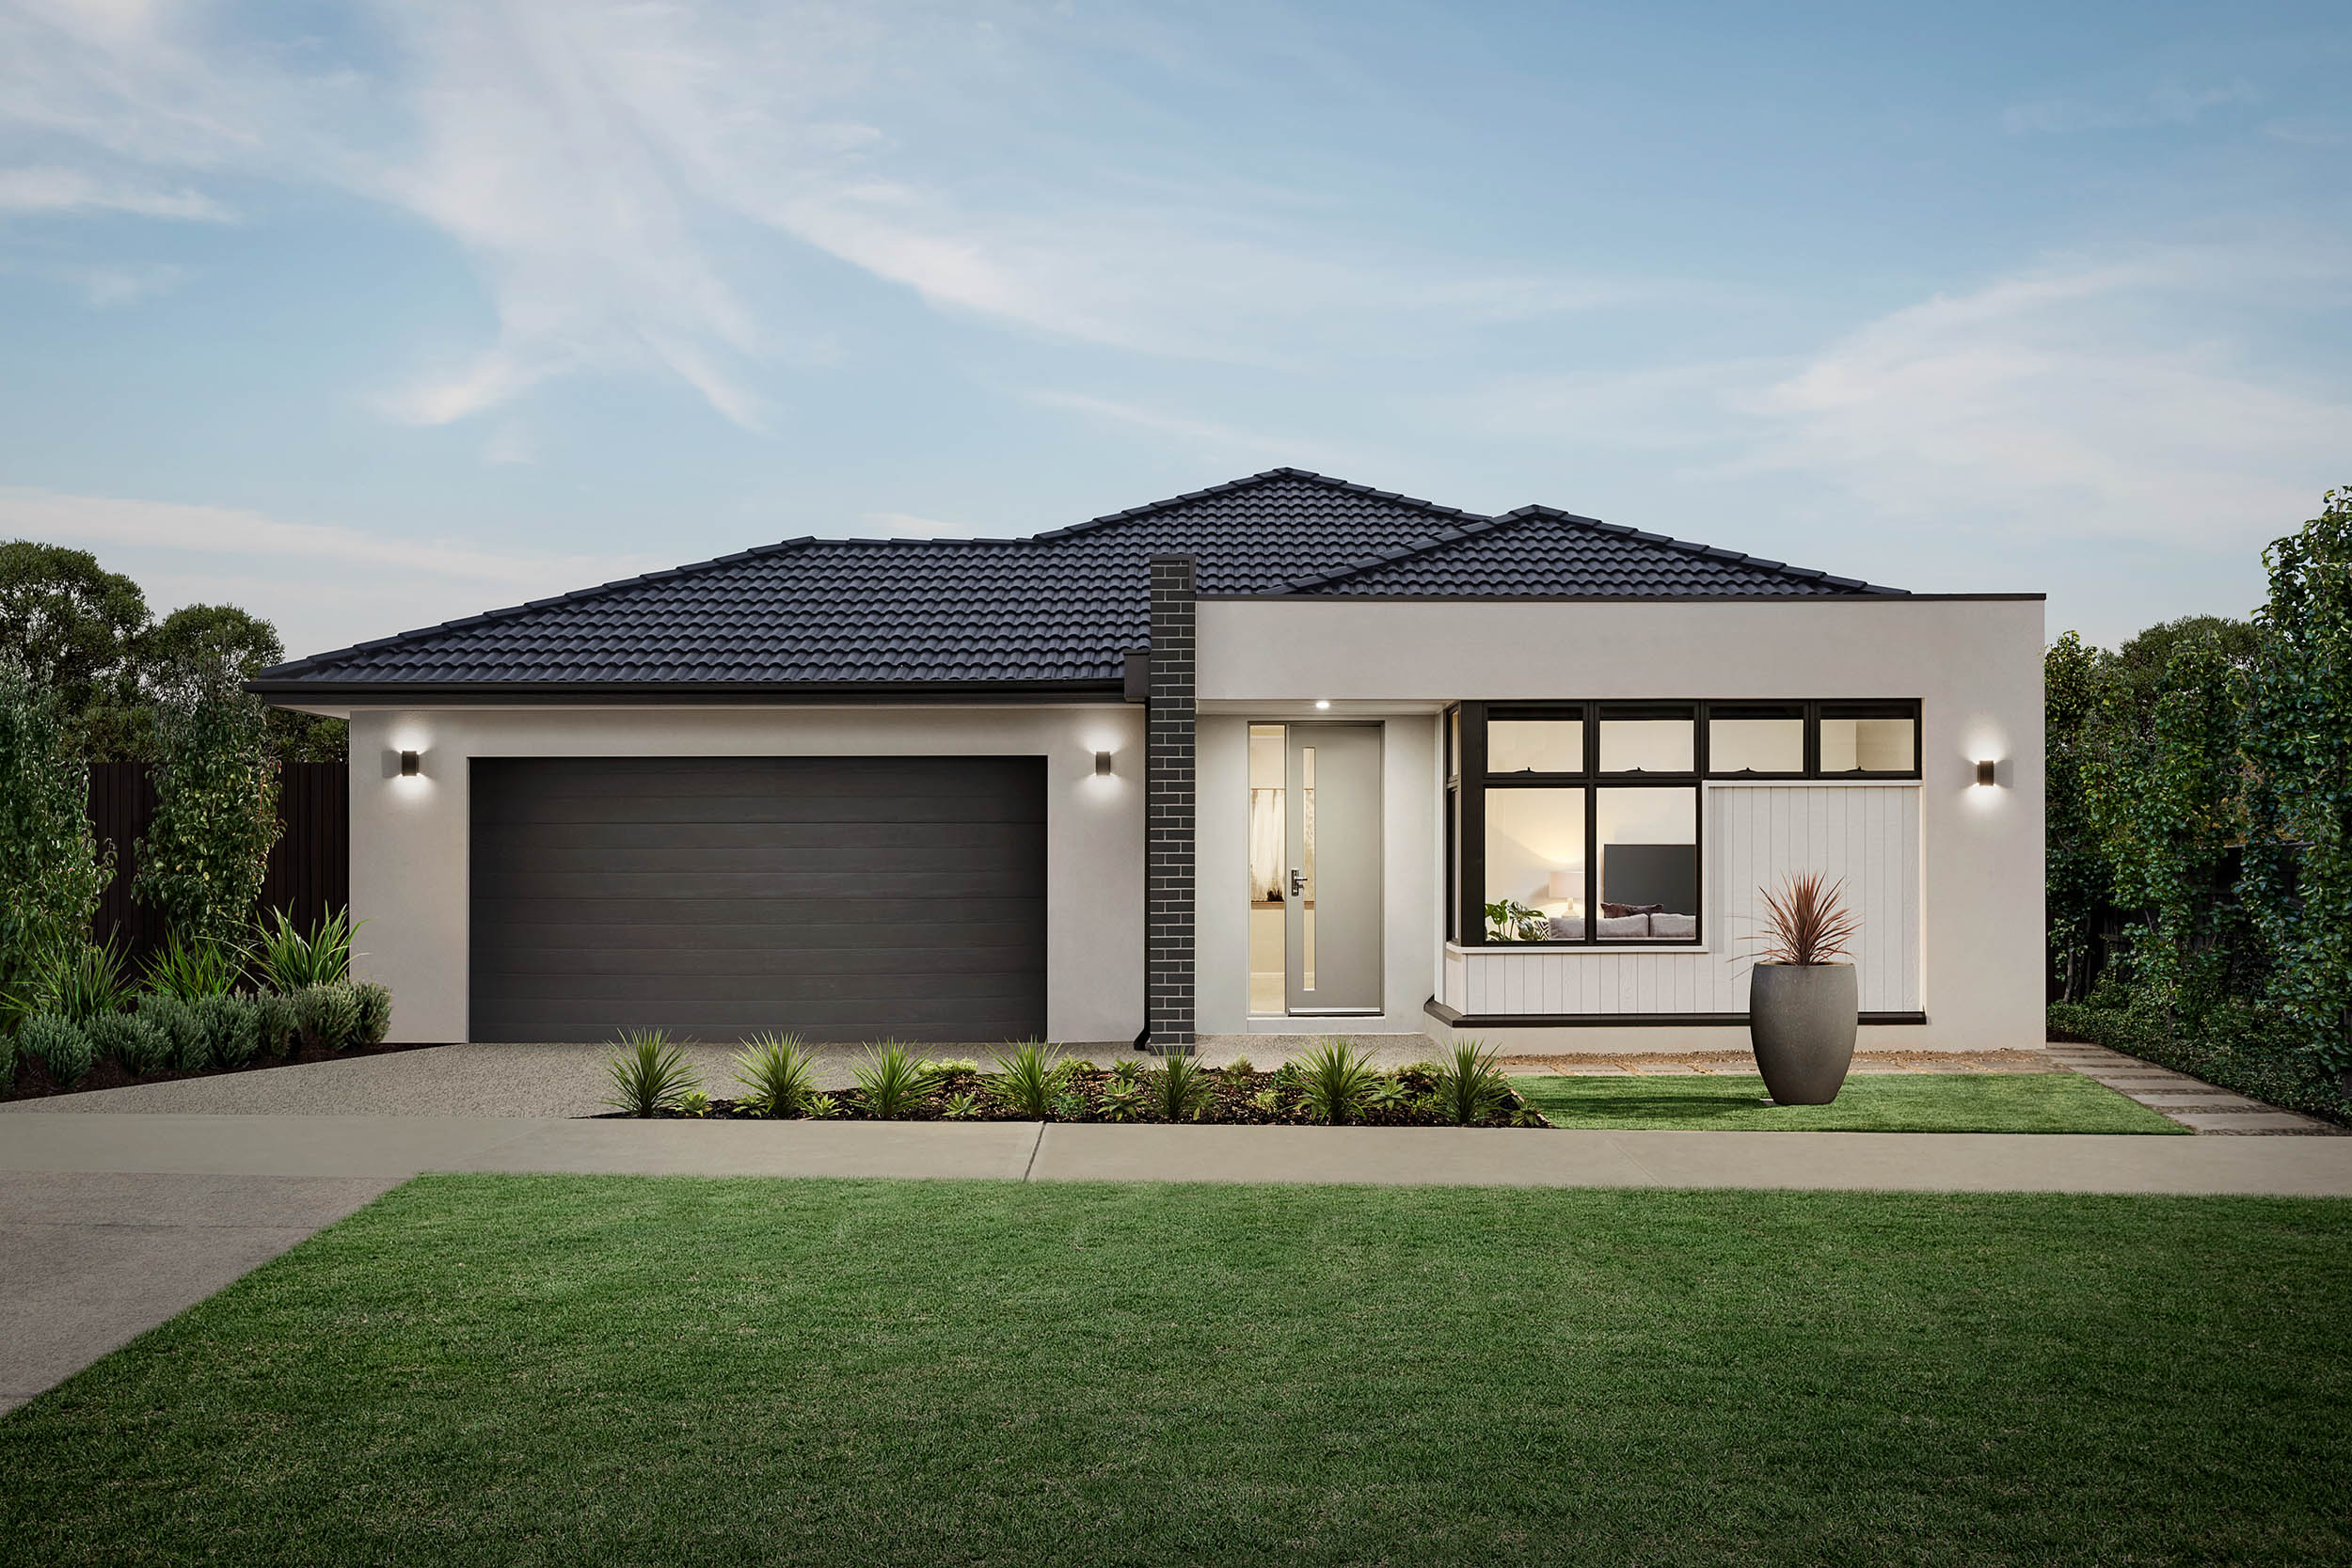 Latrobe 29 Home Design at Rathdowne